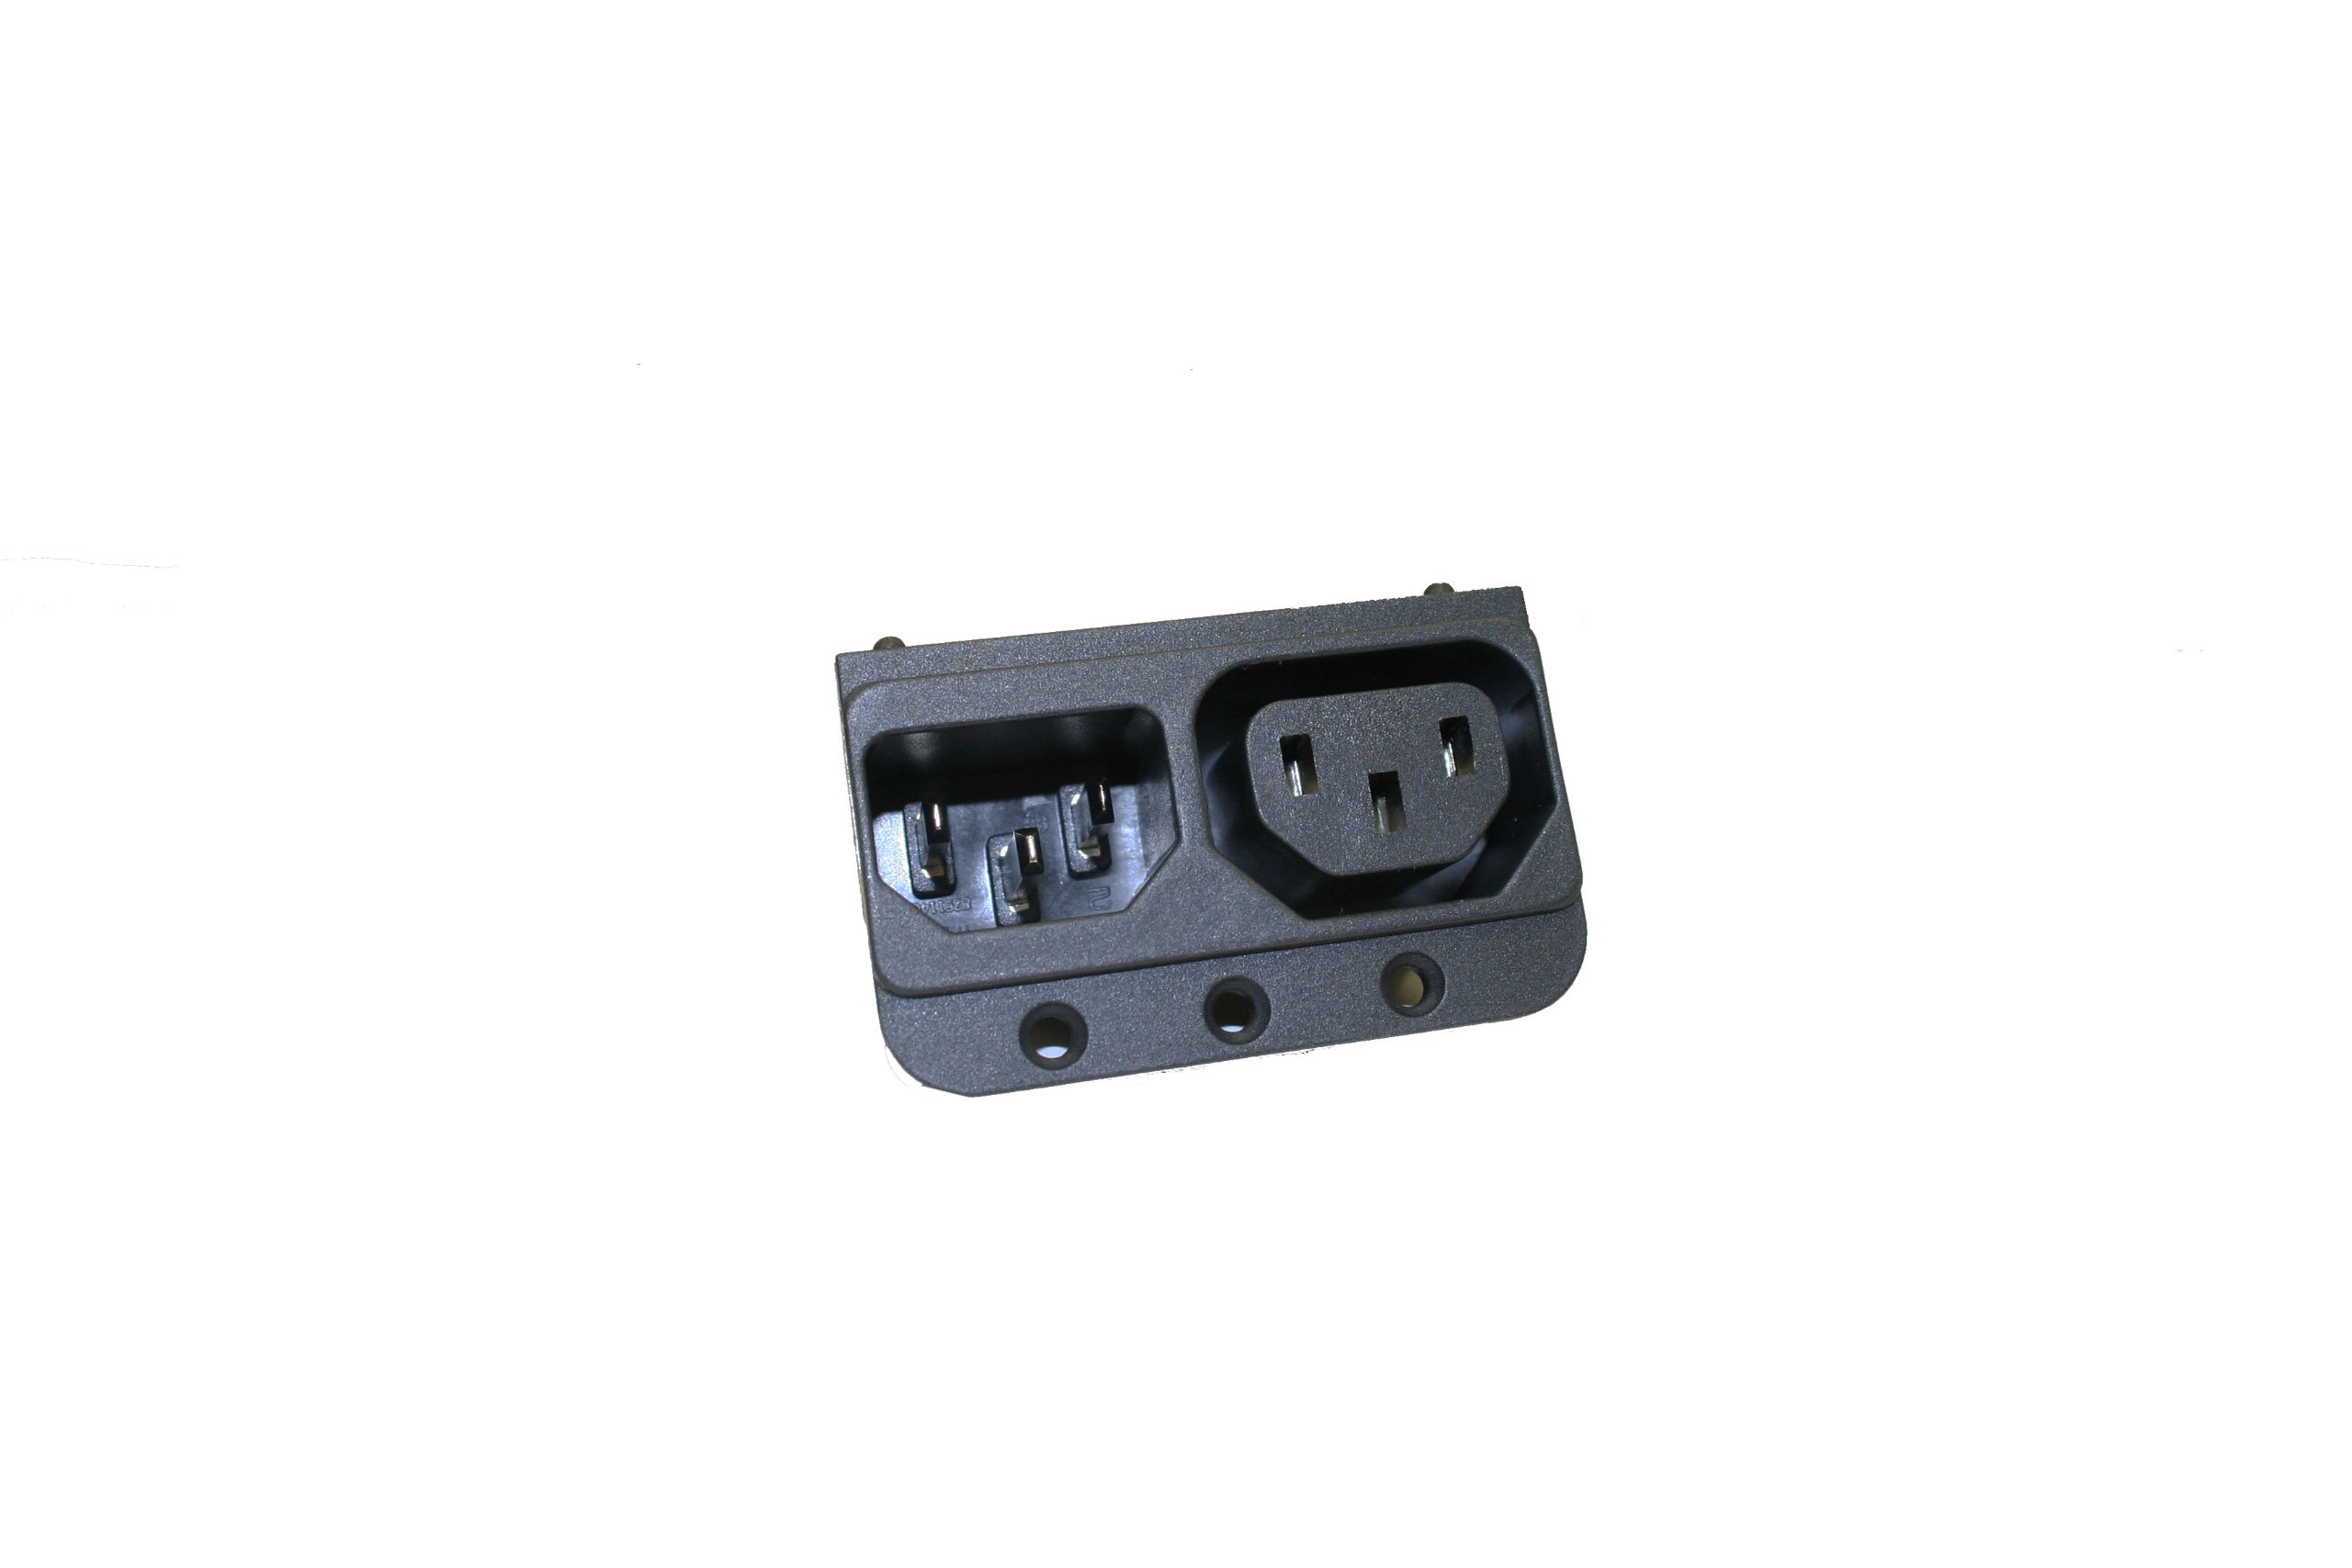 Interpower 83511400 Two Function Power Entry Module, C14 Inlet, C13 Outlet, 15A/10A Current Rating, 120/250VAC Voltage Rating by Interpower